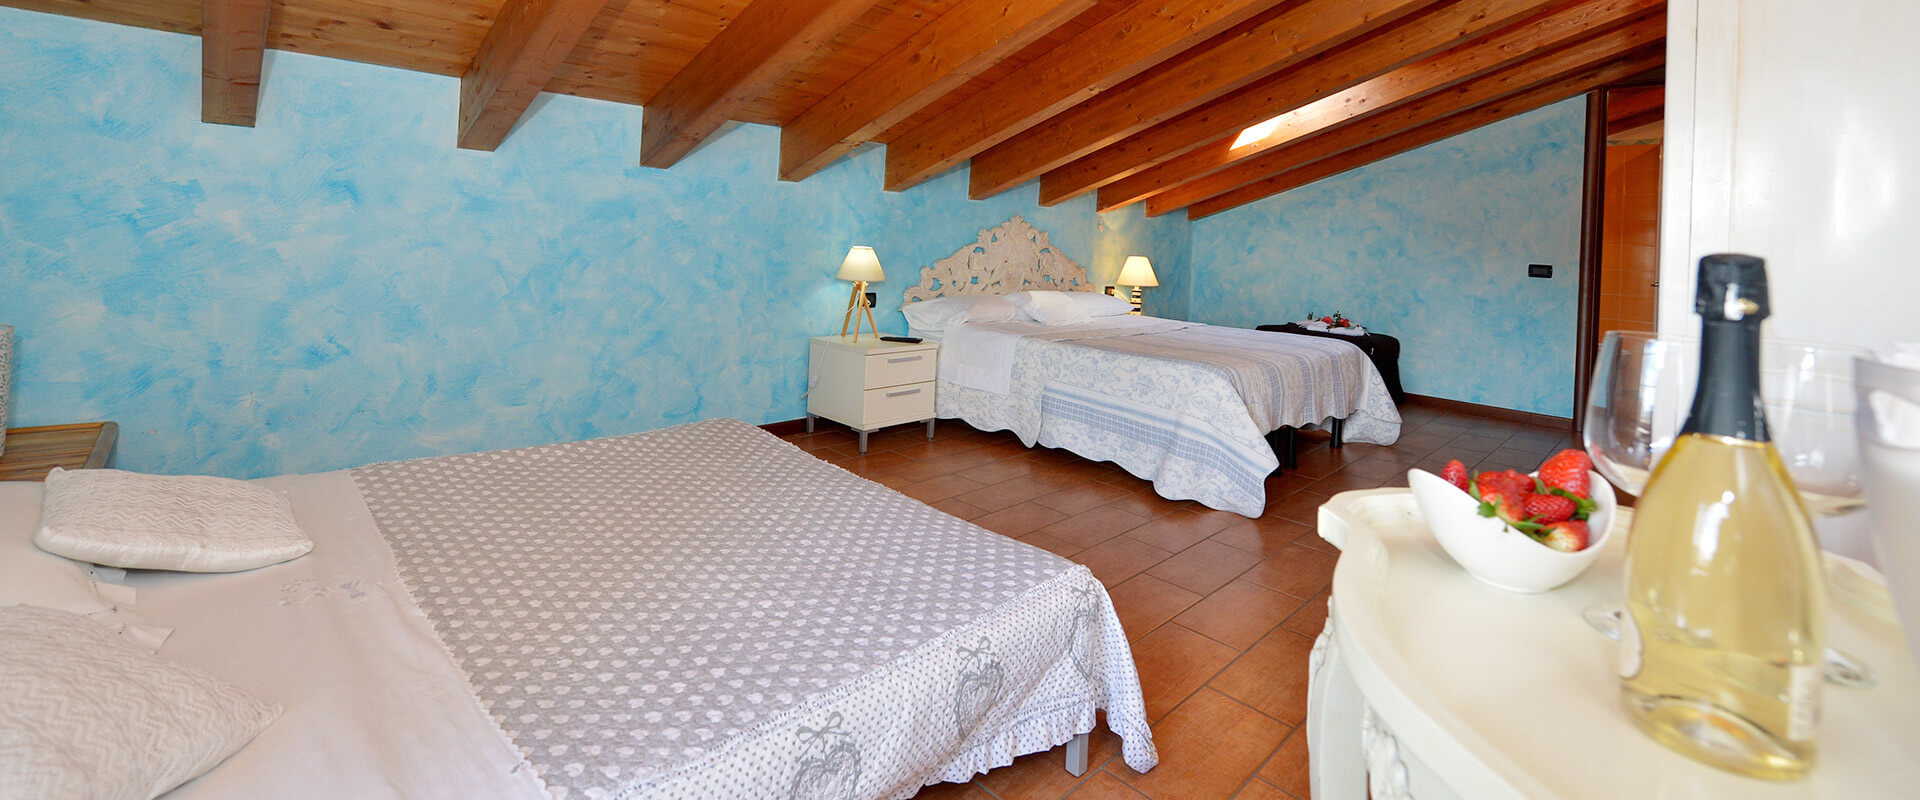 B&B vicino Aquardens